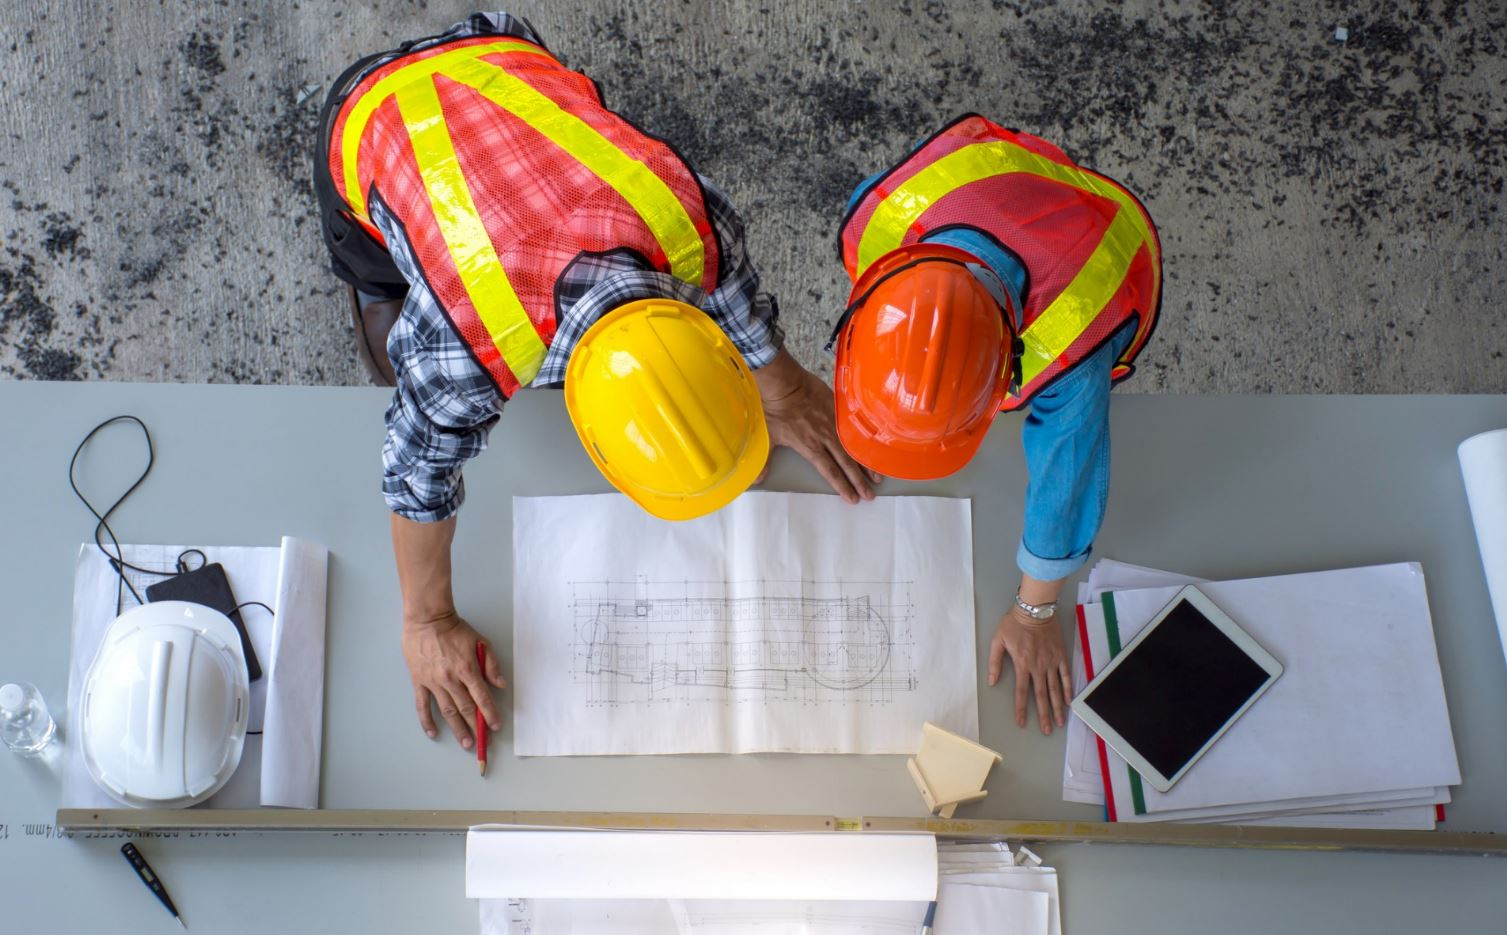 About Dependable Construction Contractor in New Rochelle, NY